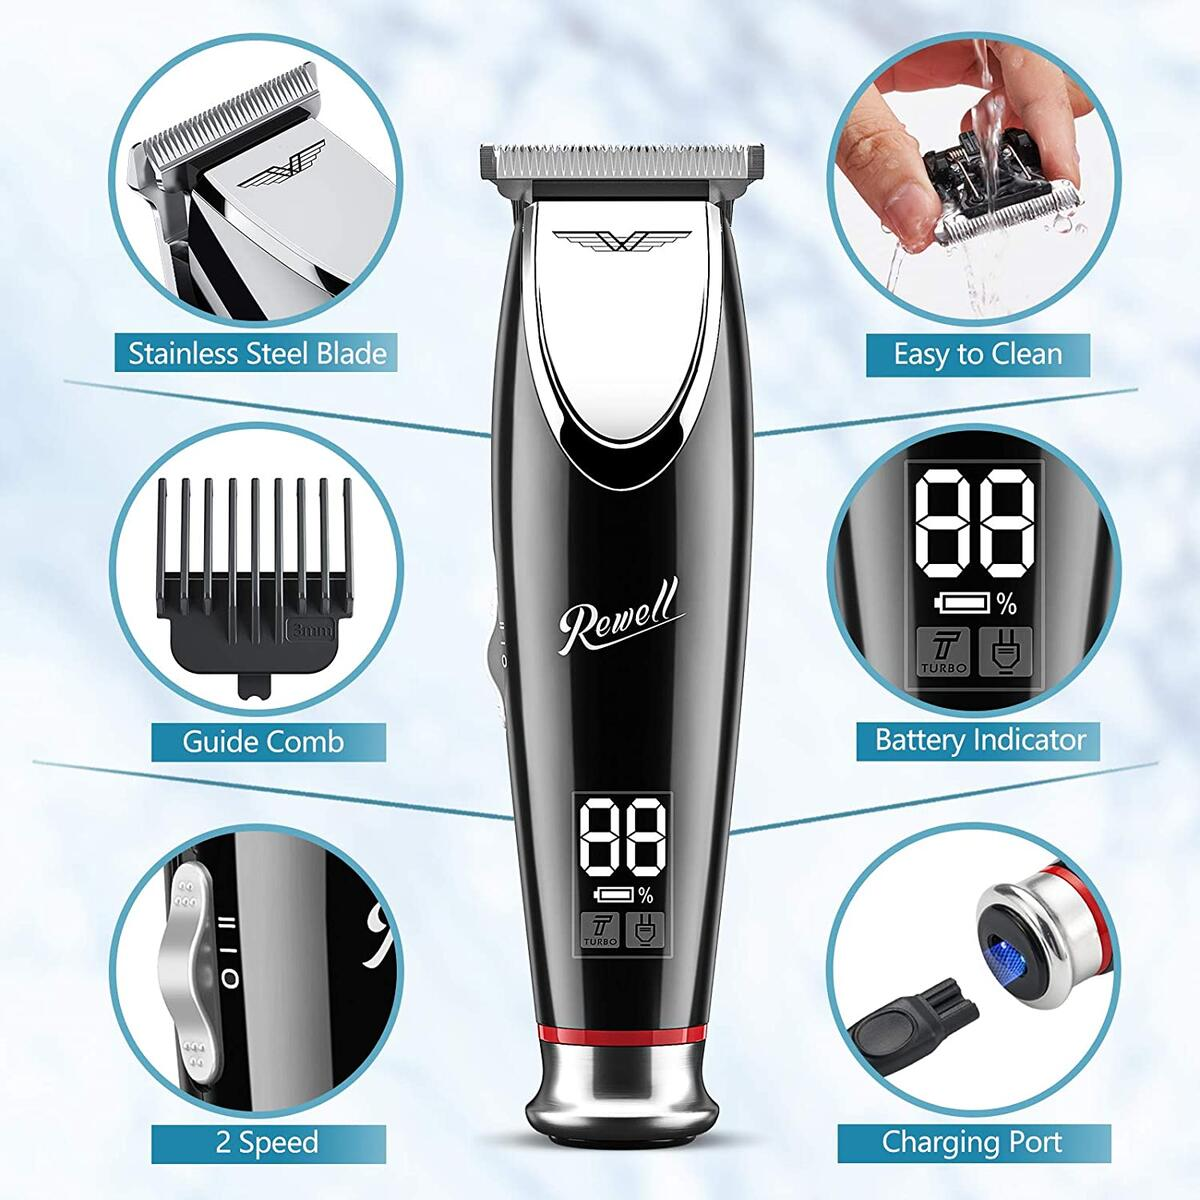 Rewell Men's Cordless Hair Clipper, Professional Hair Trimmer for Grooming, Electric Barber Rechargeable T-Blade Home Hair Cutting Kit